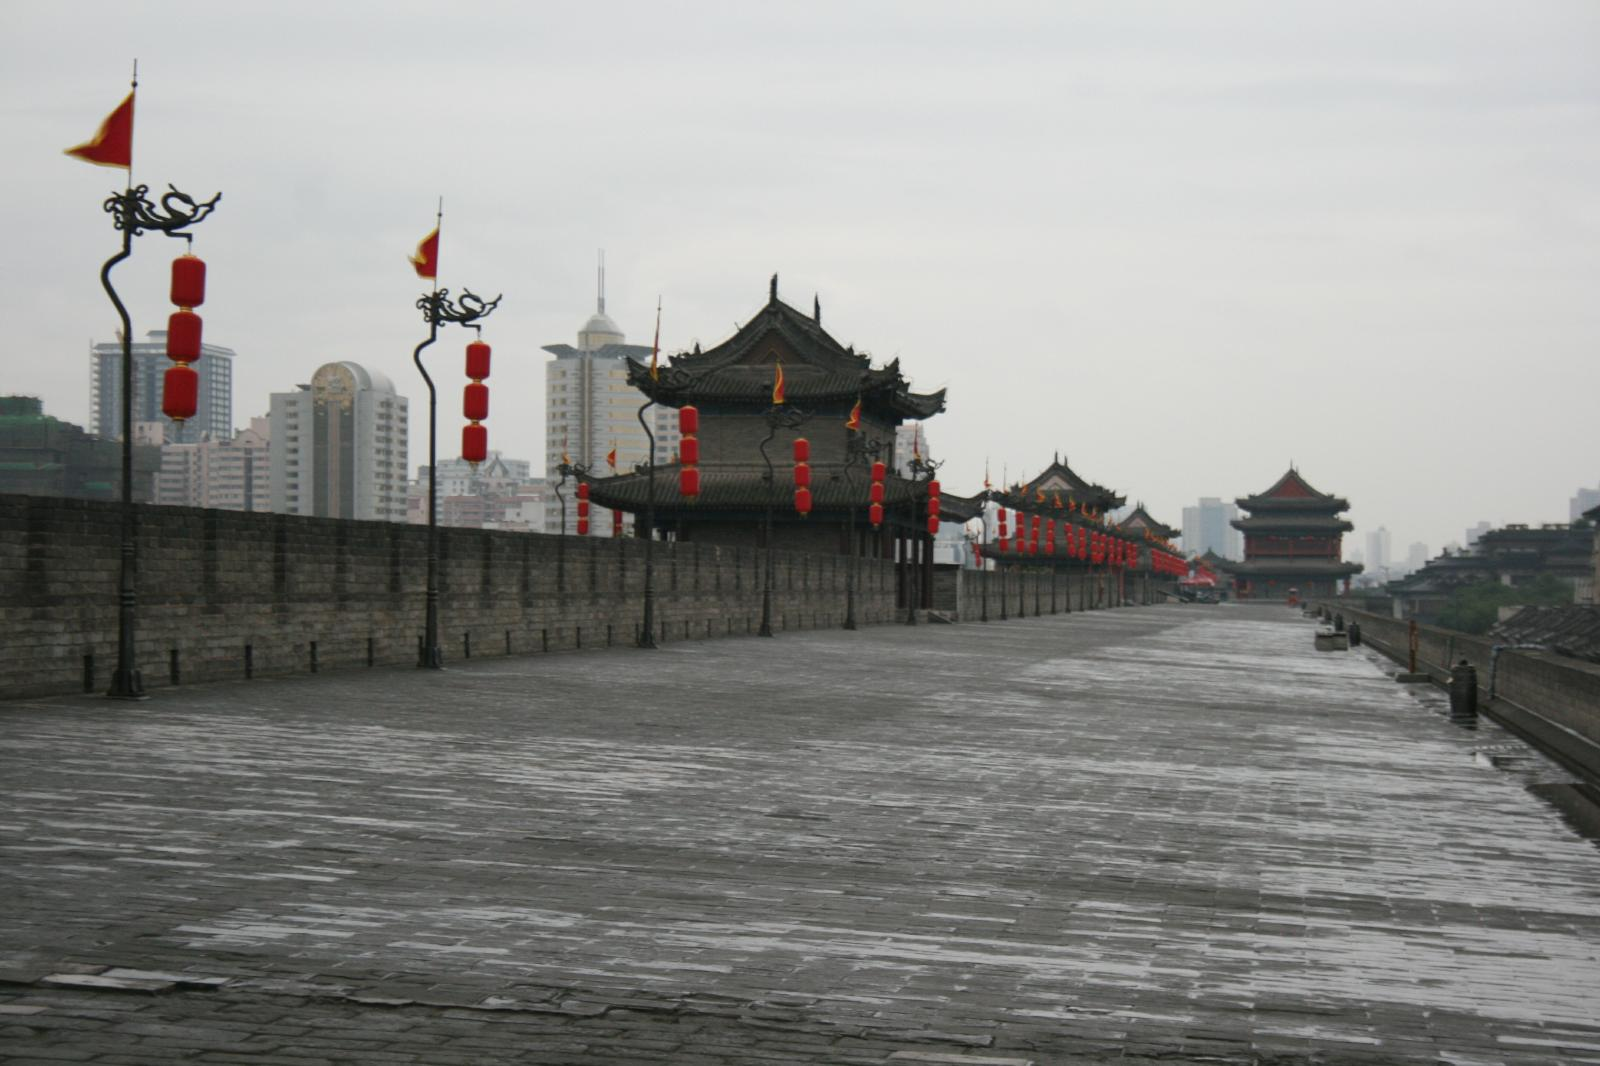 Pictures from China